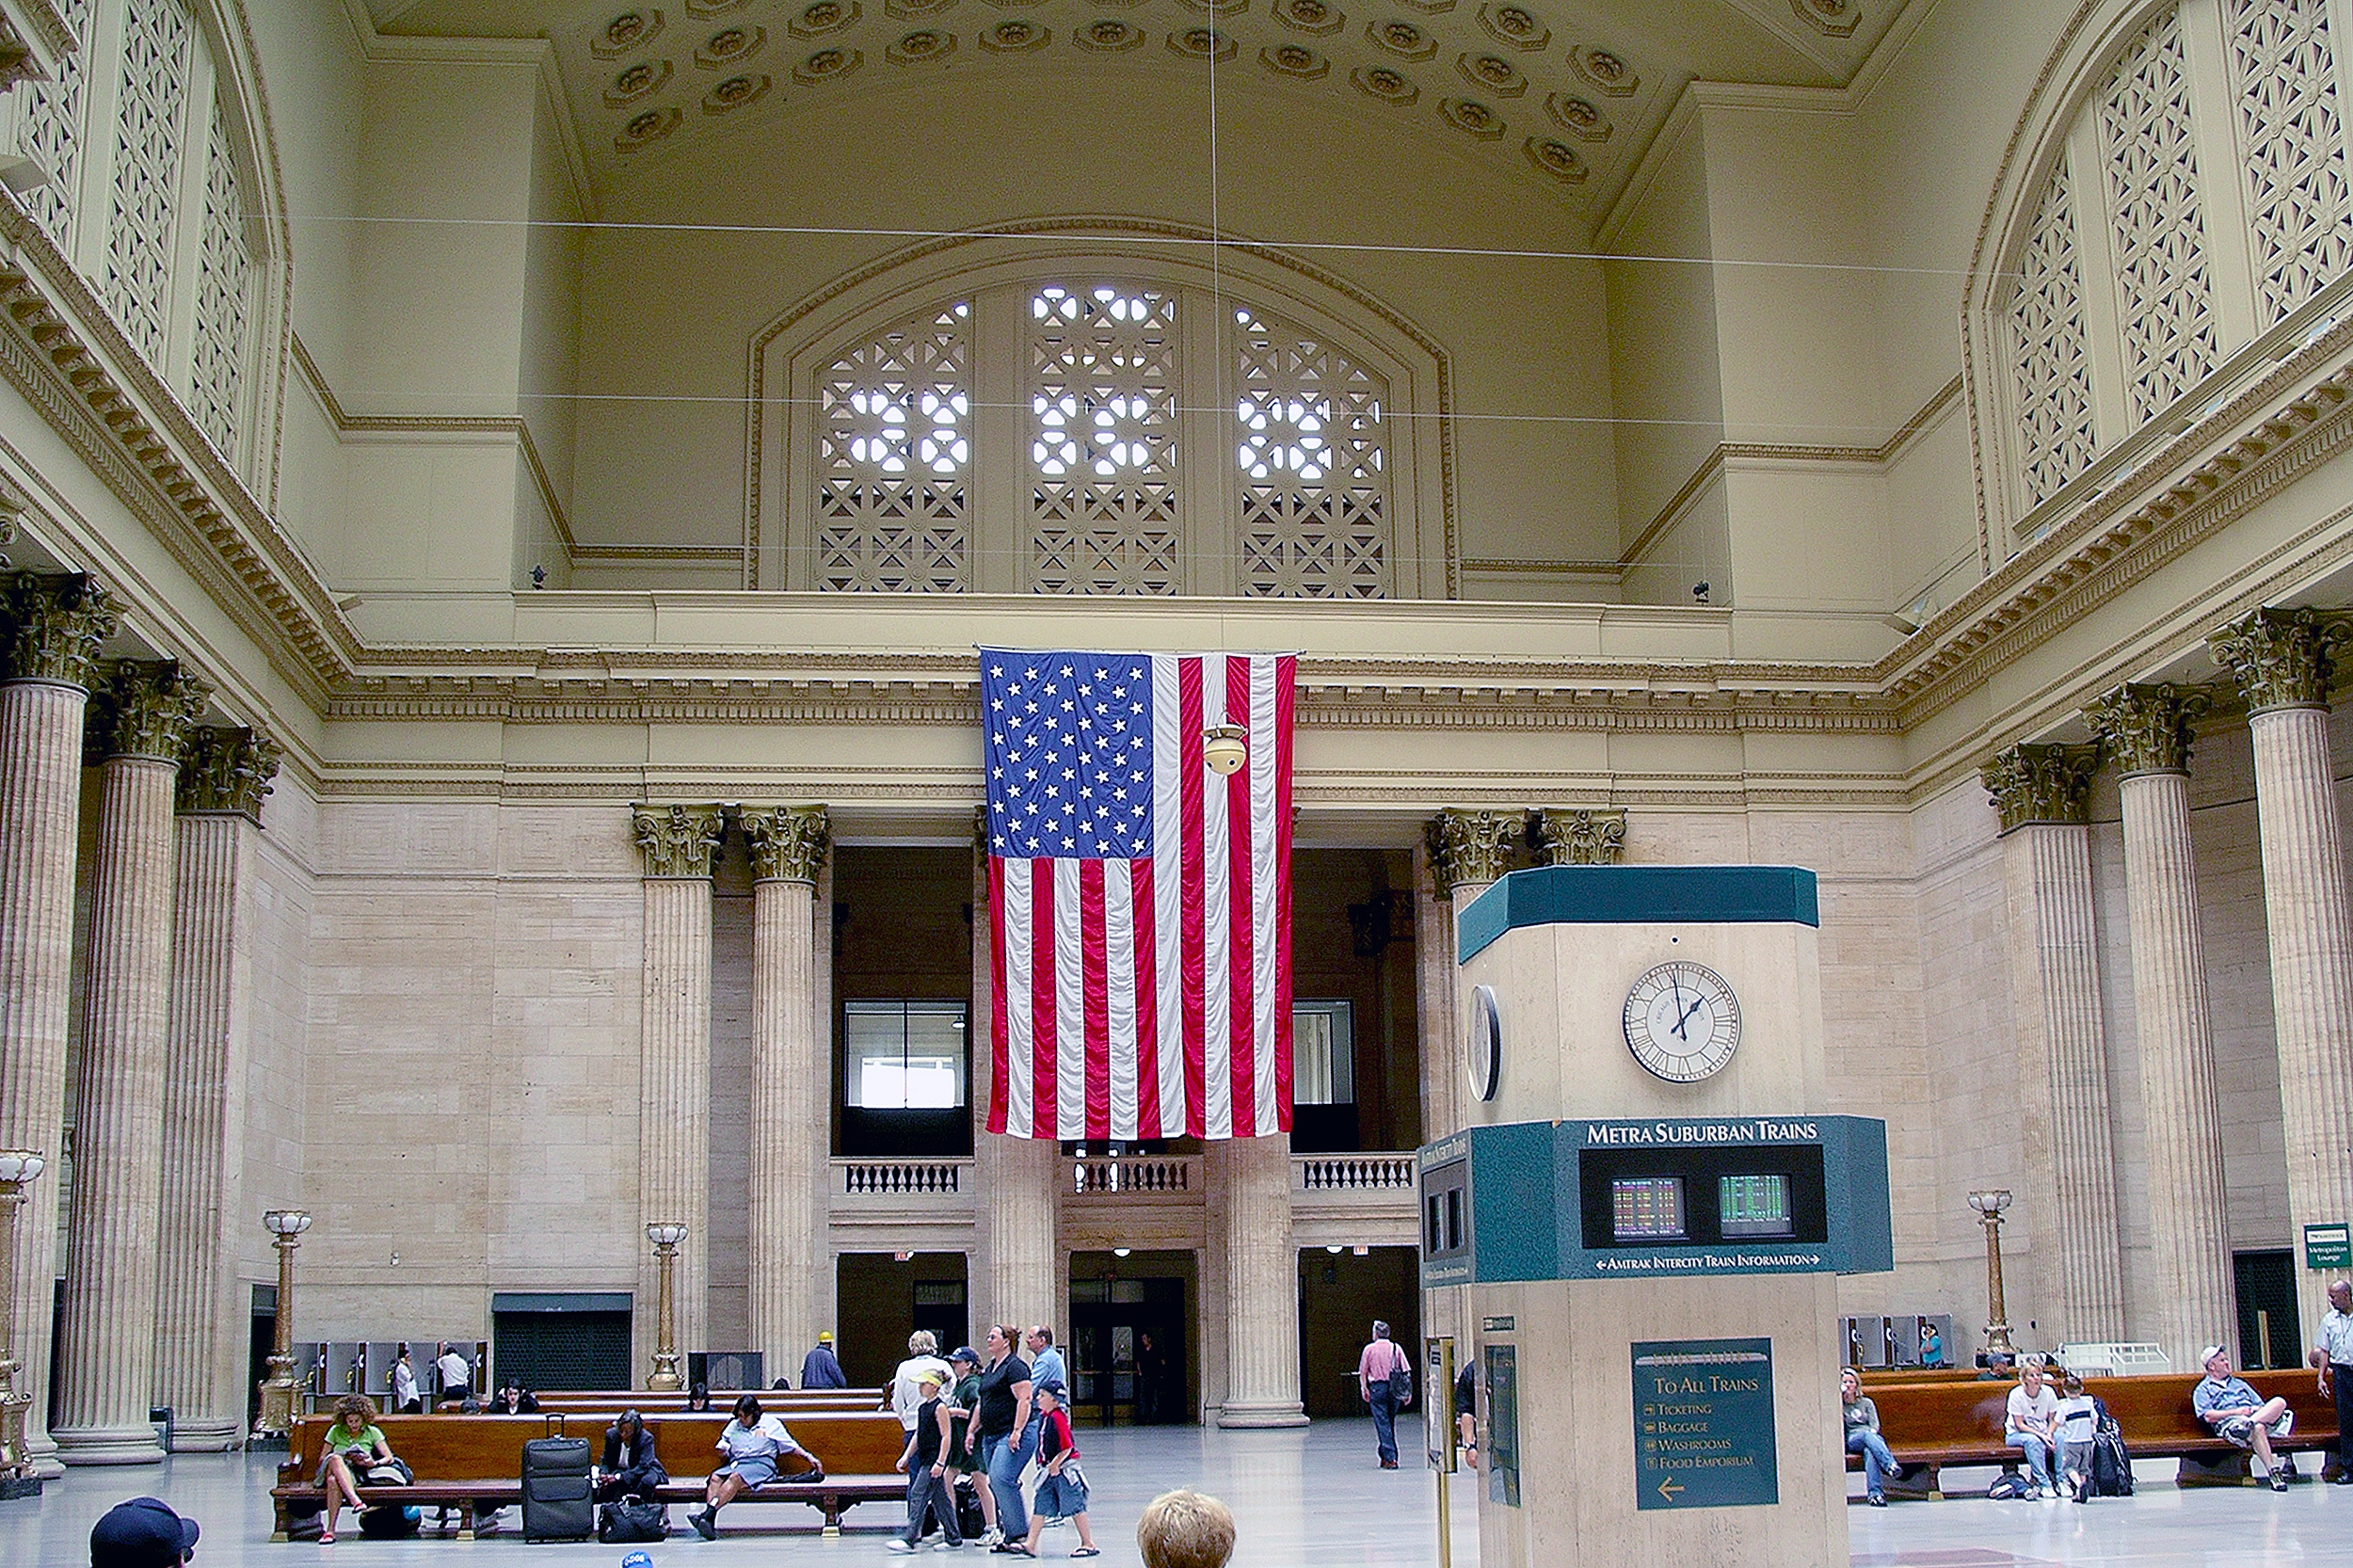 Union Station Chicago Amtrak